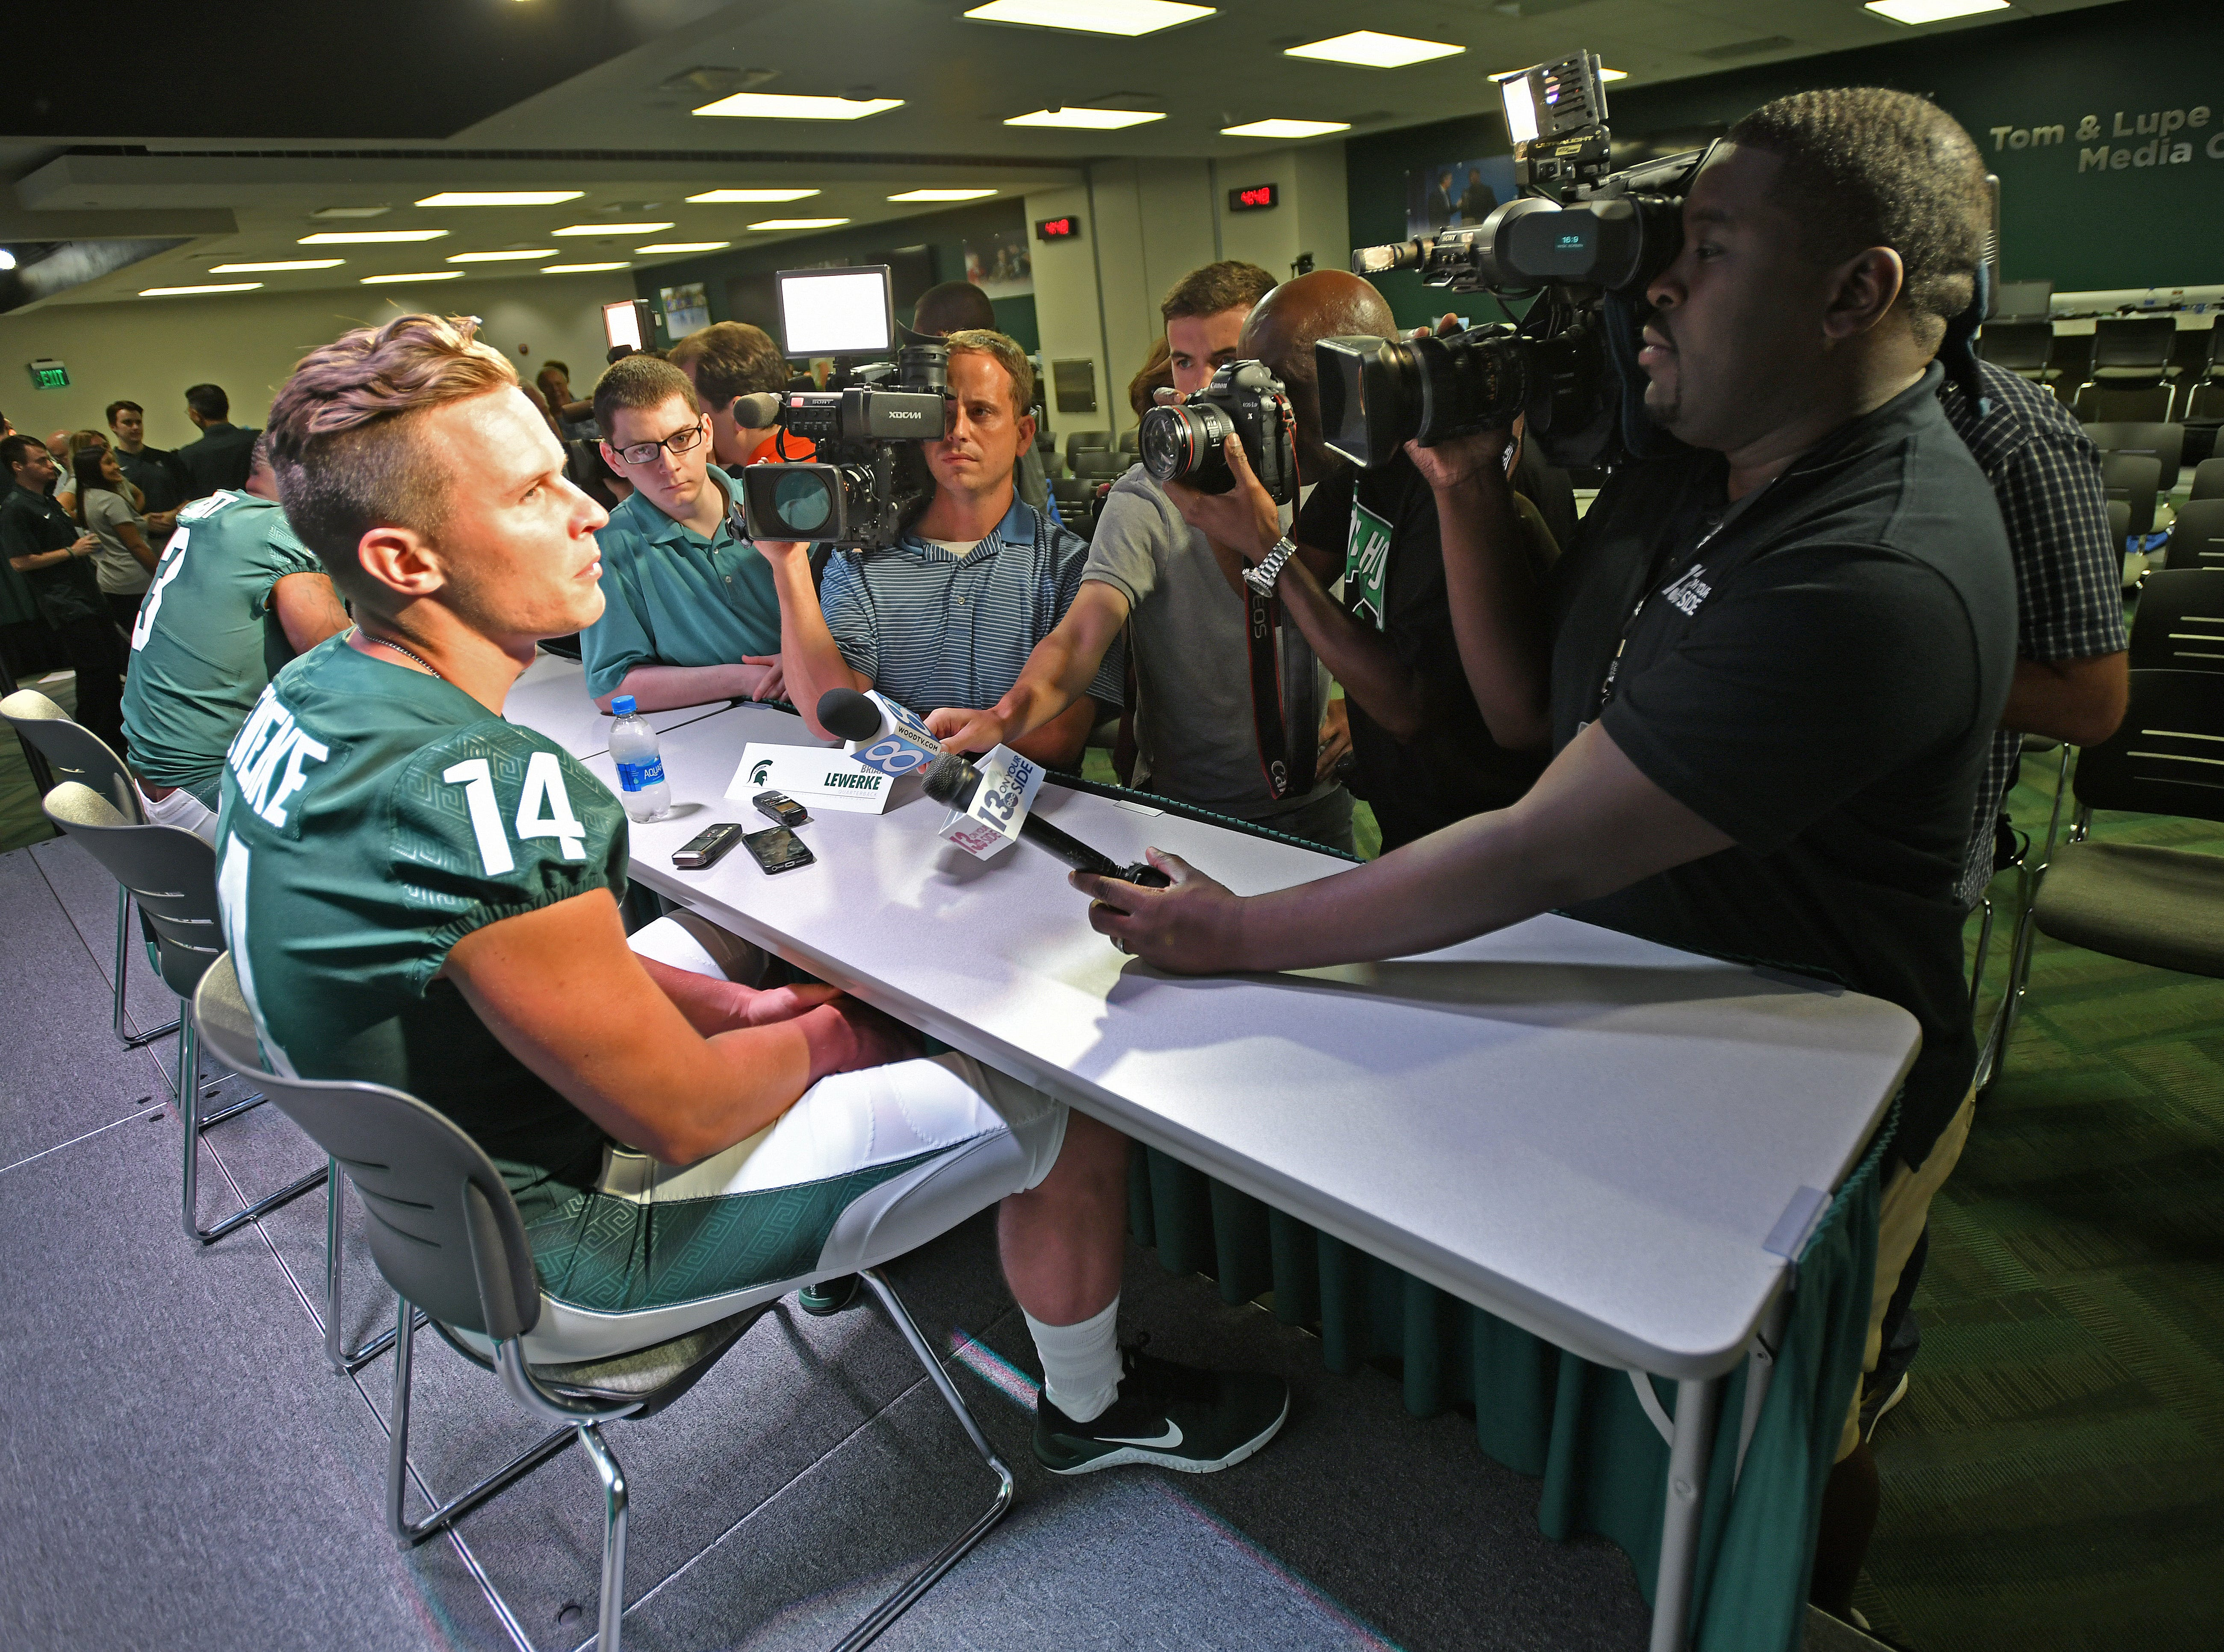 As you might expect for a starting quarterback, Brian Lewerke was mobbed by the media at Michigan State's annual football media day on Aug. 6, 2018, at Spartan Stadium in East Lansing.